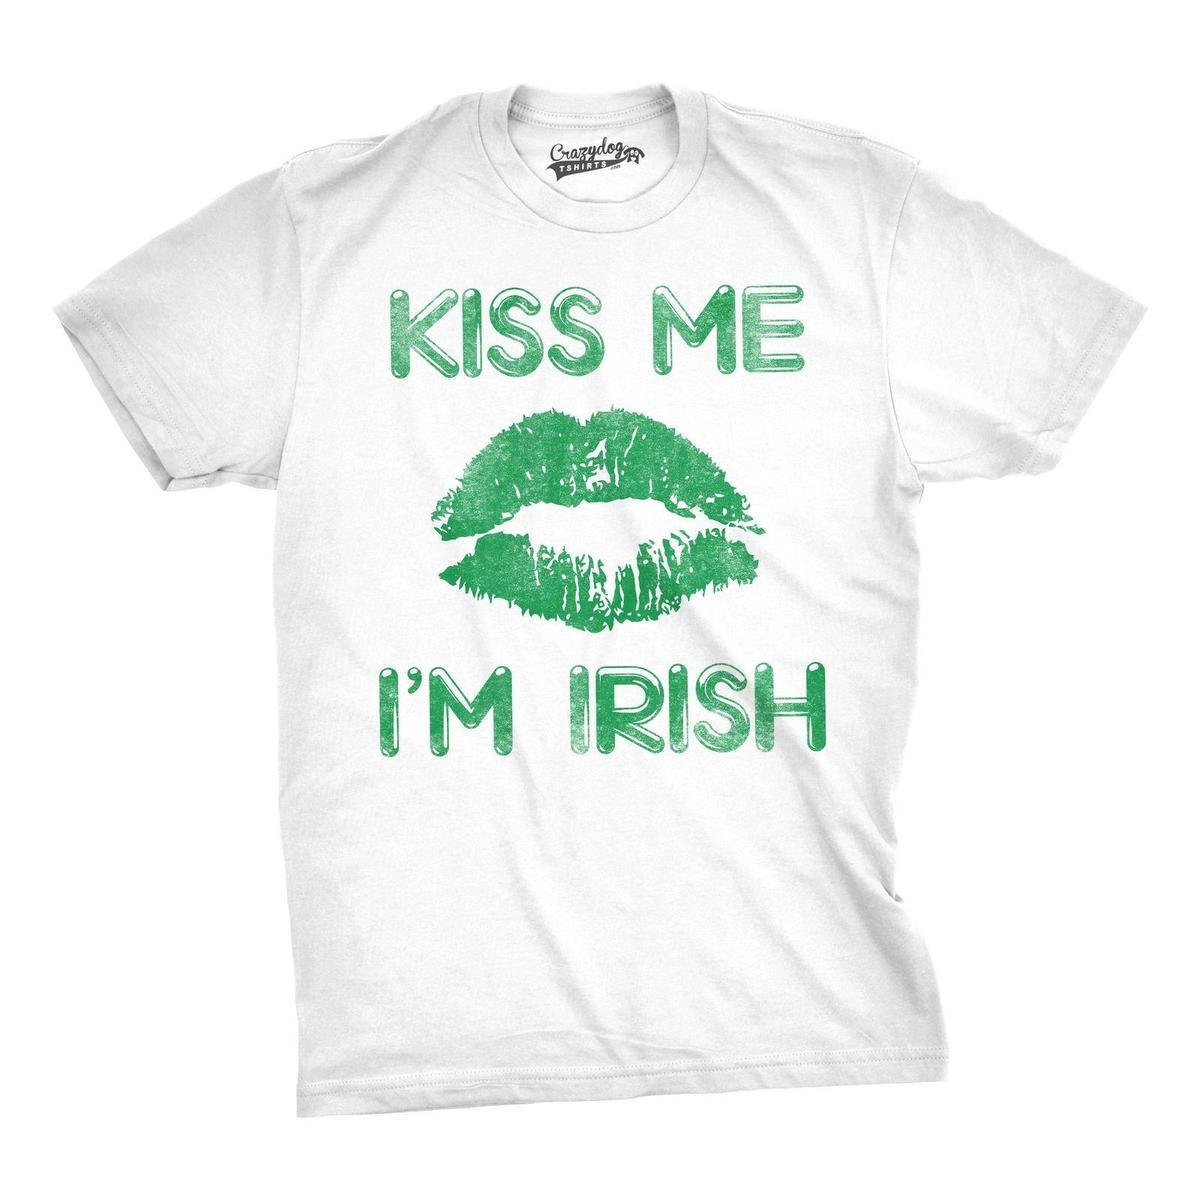 a466b5b0 Mens Green Lips Cute Kiss Me I'm Irish Funny St. Patrick's Day T shirt